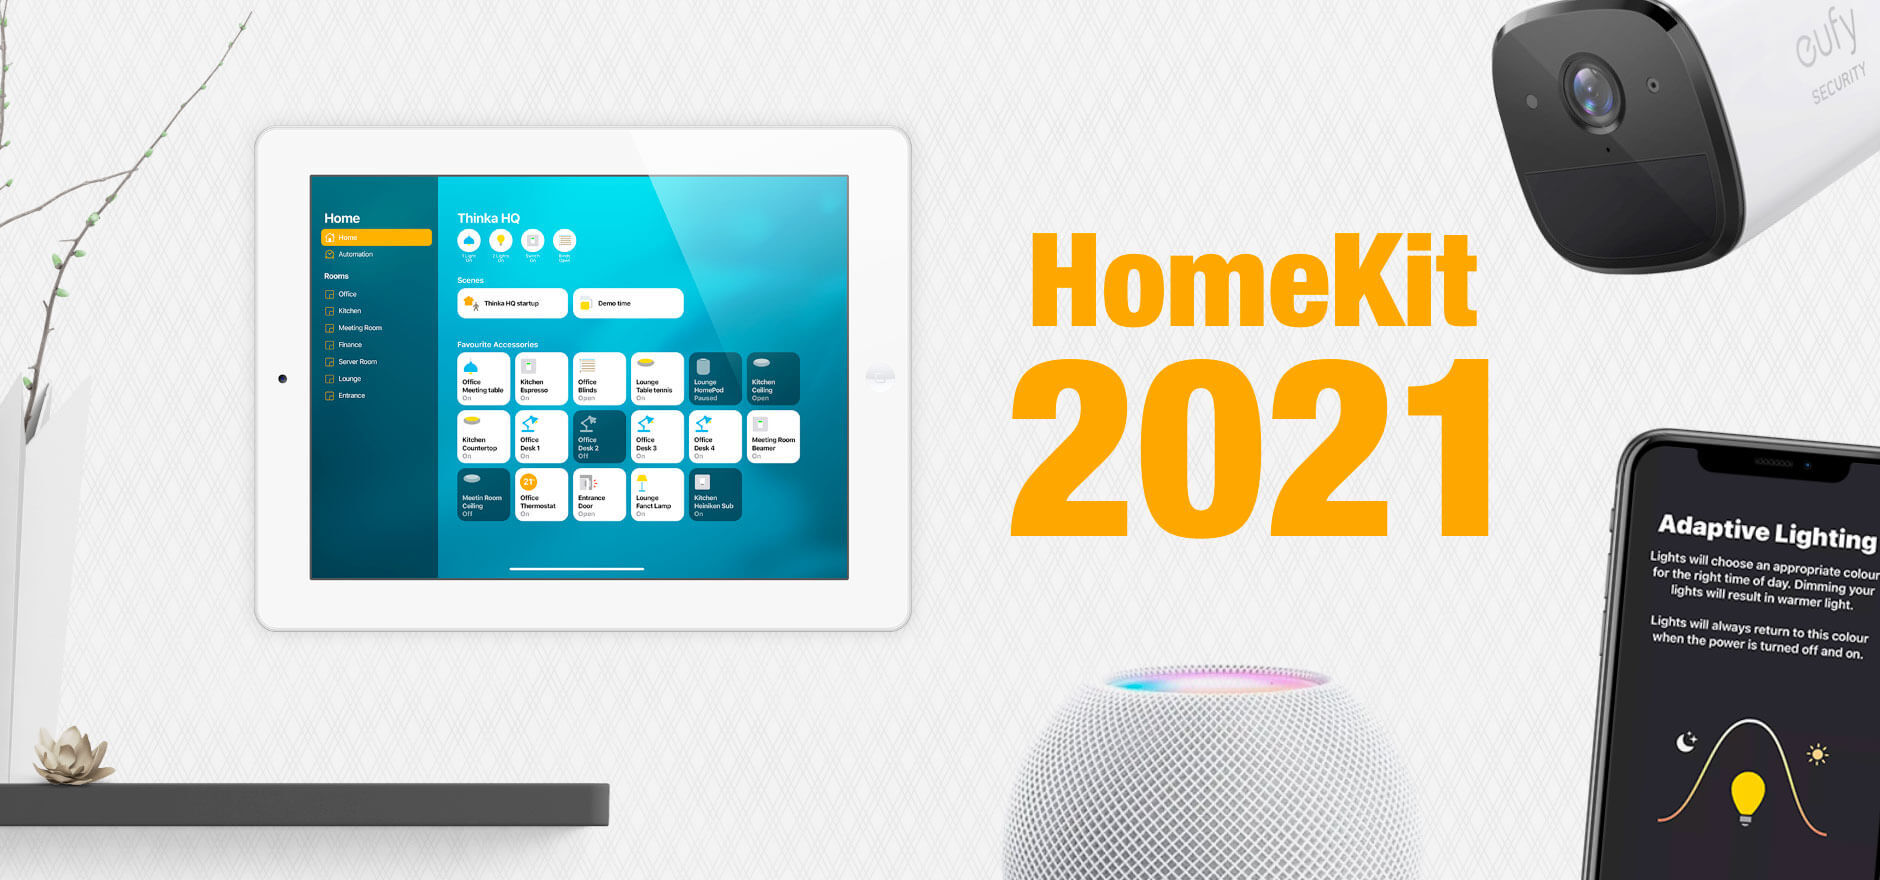 HomeKit releases in 2021